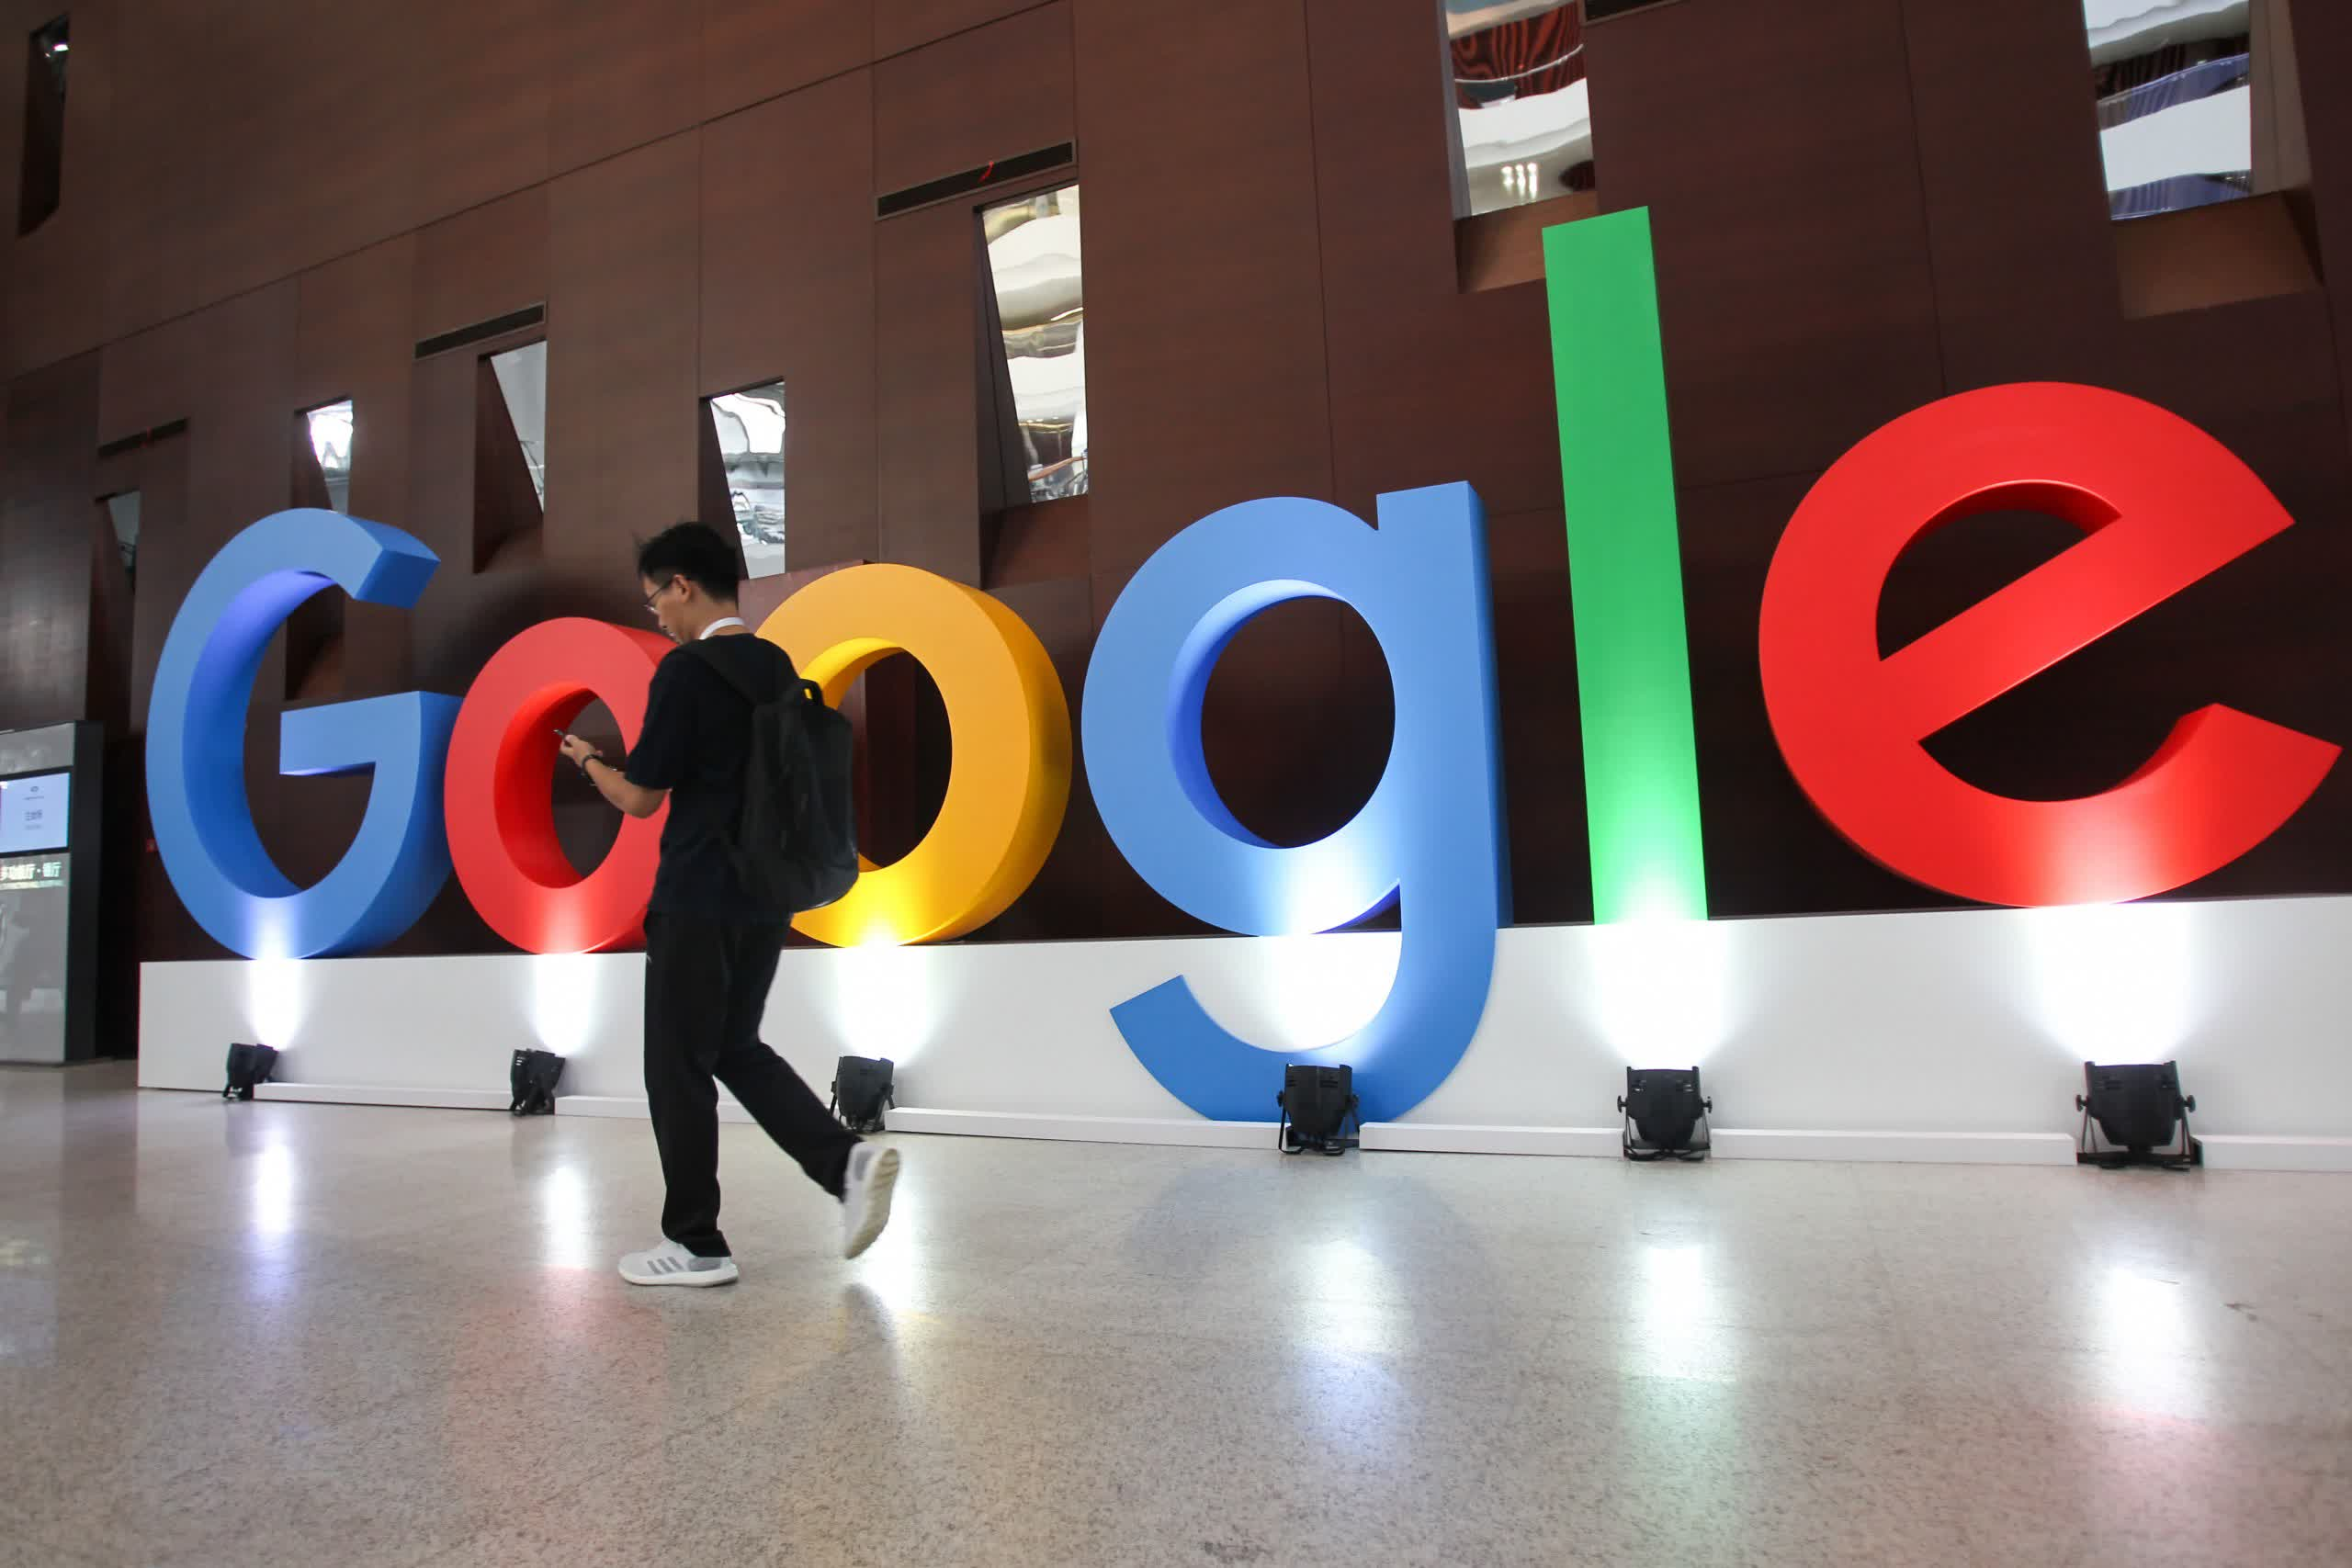 Google: The top search query on Bing is Google